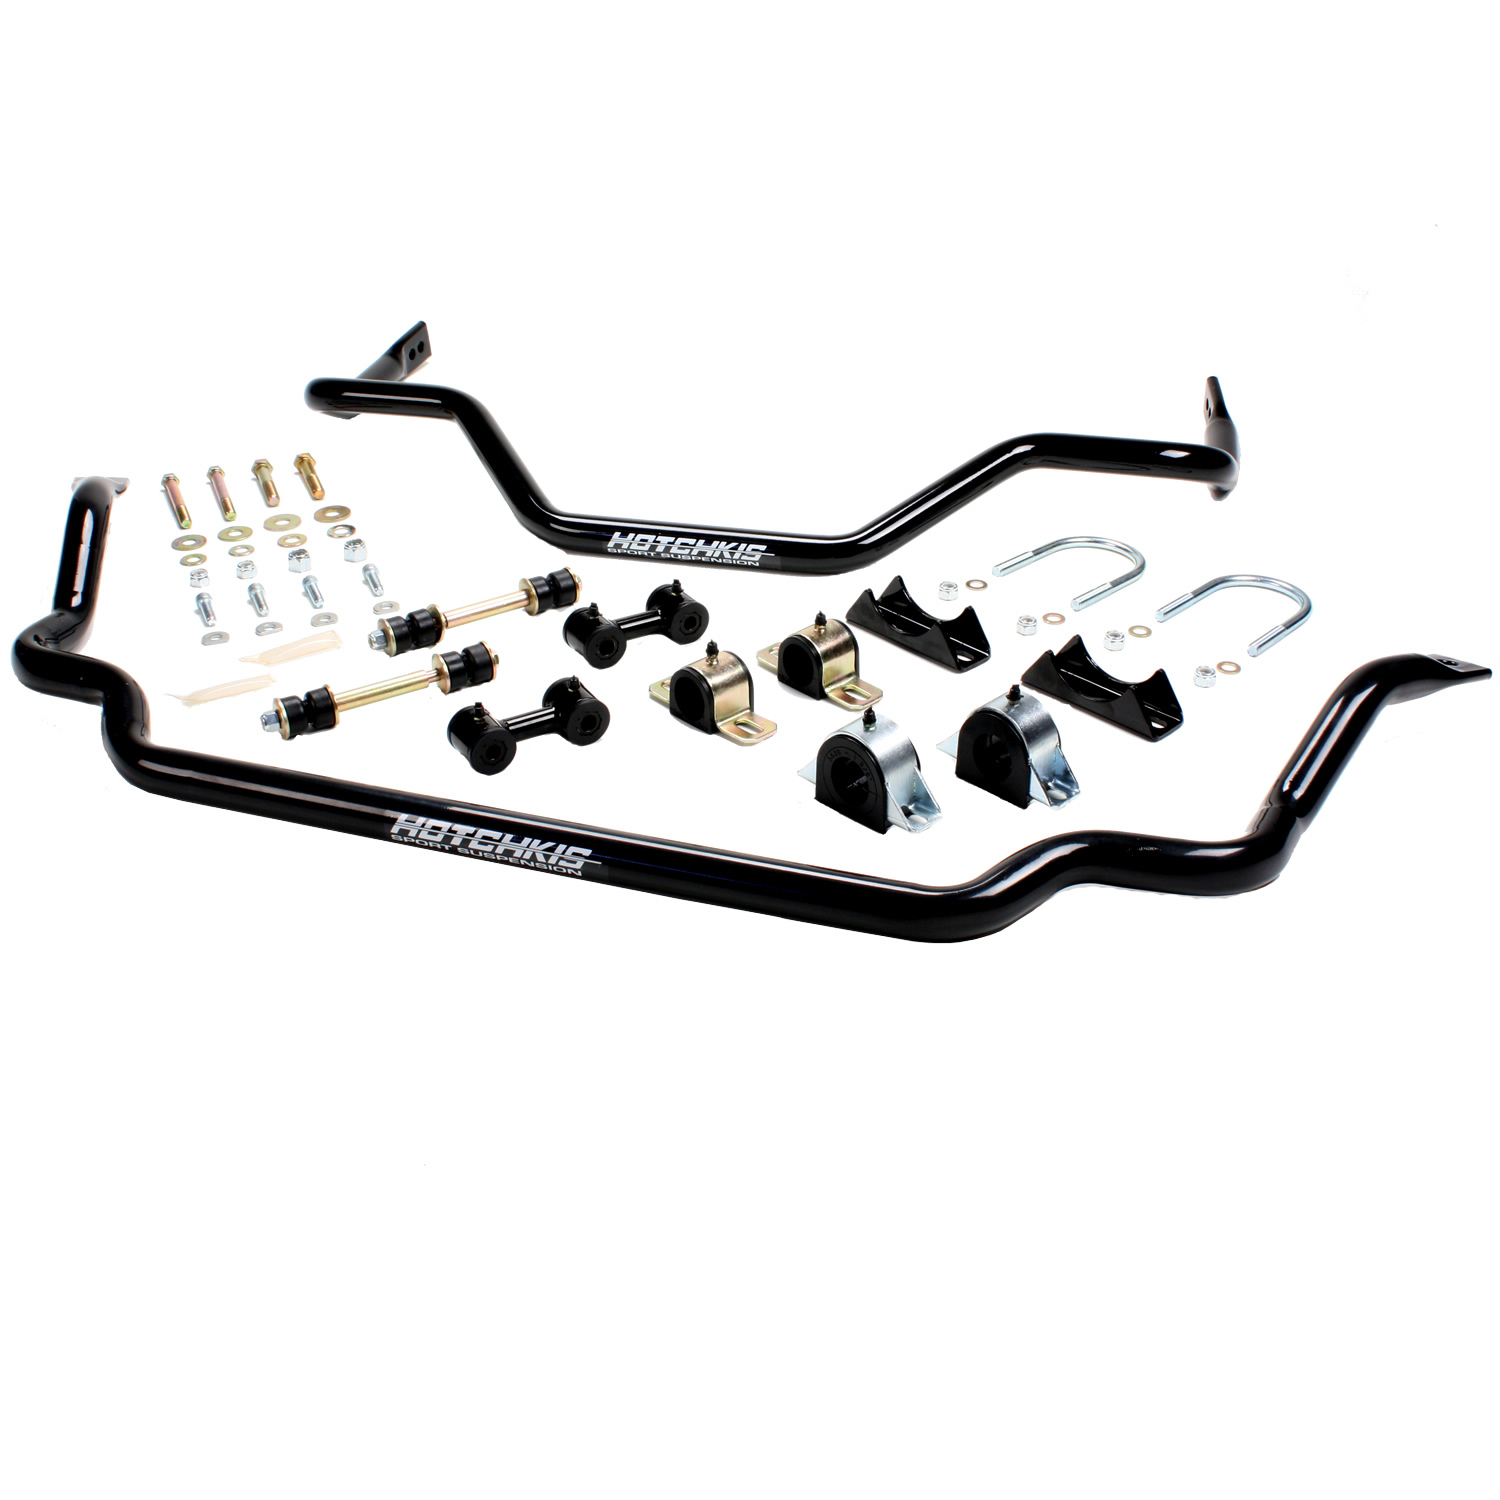 1964-1972 GM A-Body Extreme Sway Bar Set from Hotchkis Sport Suspension